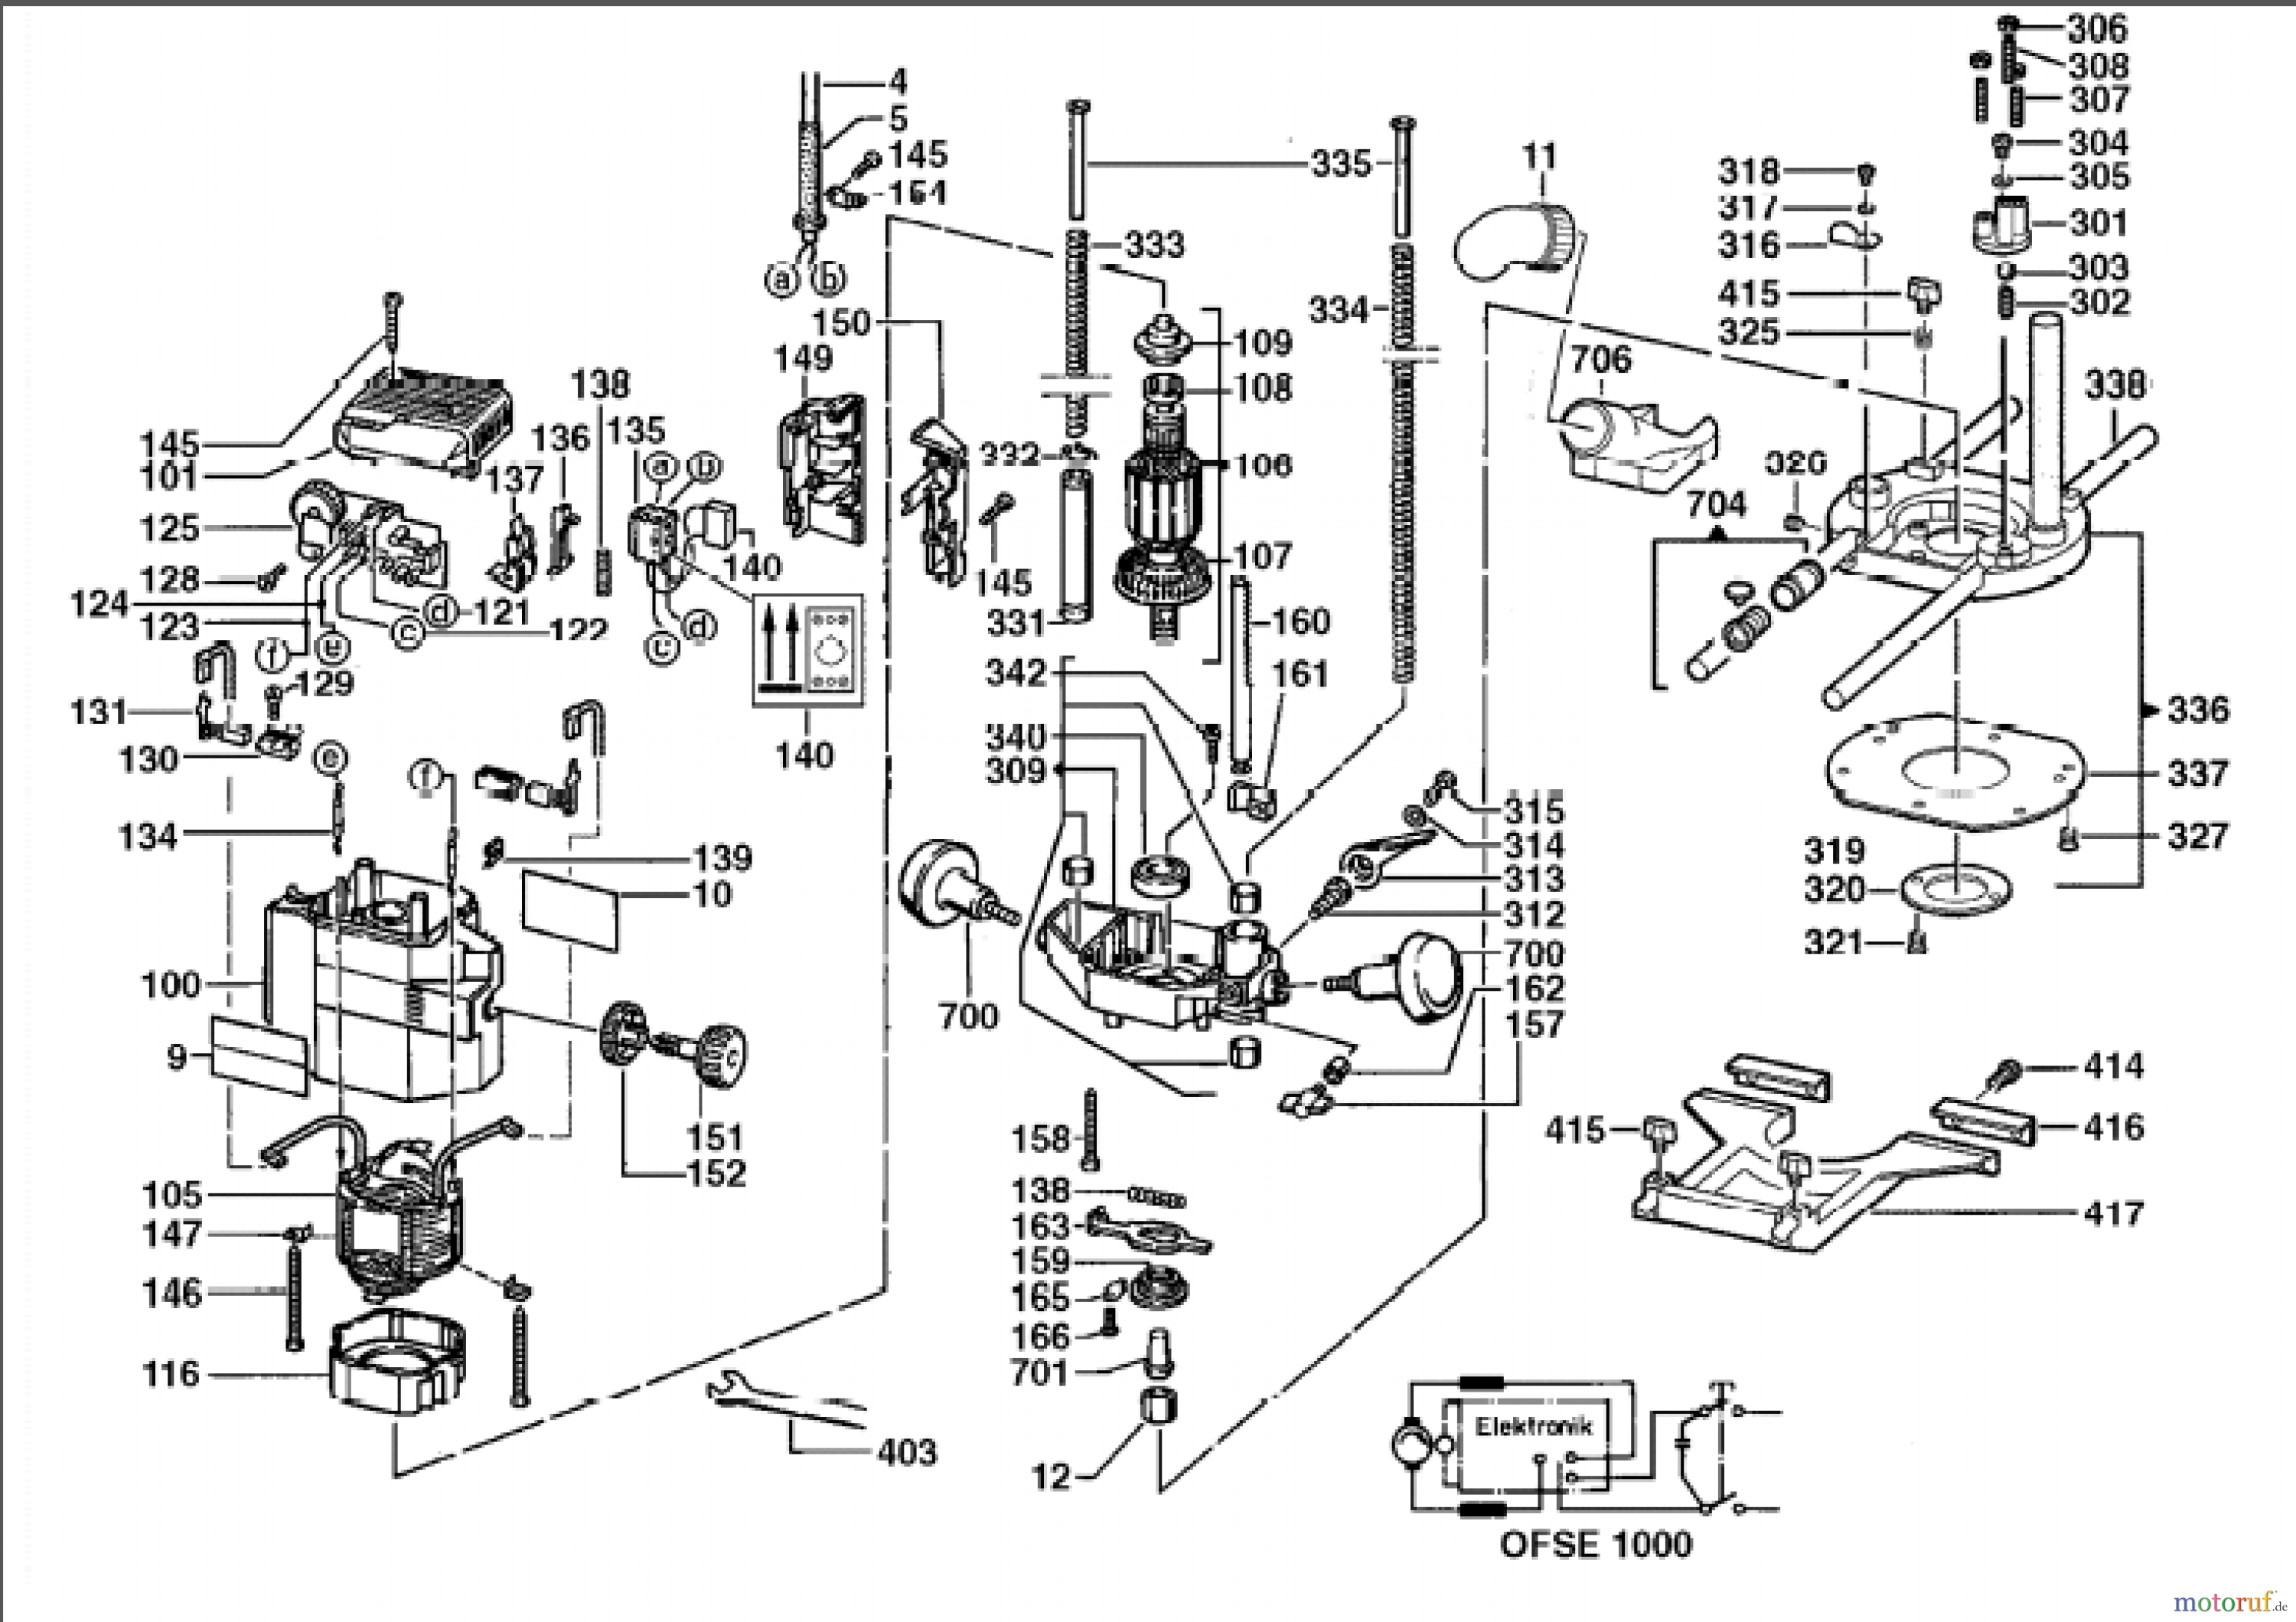 Dexter Axle Electric Ke Wiring Diagram Get Free Image About Wiring